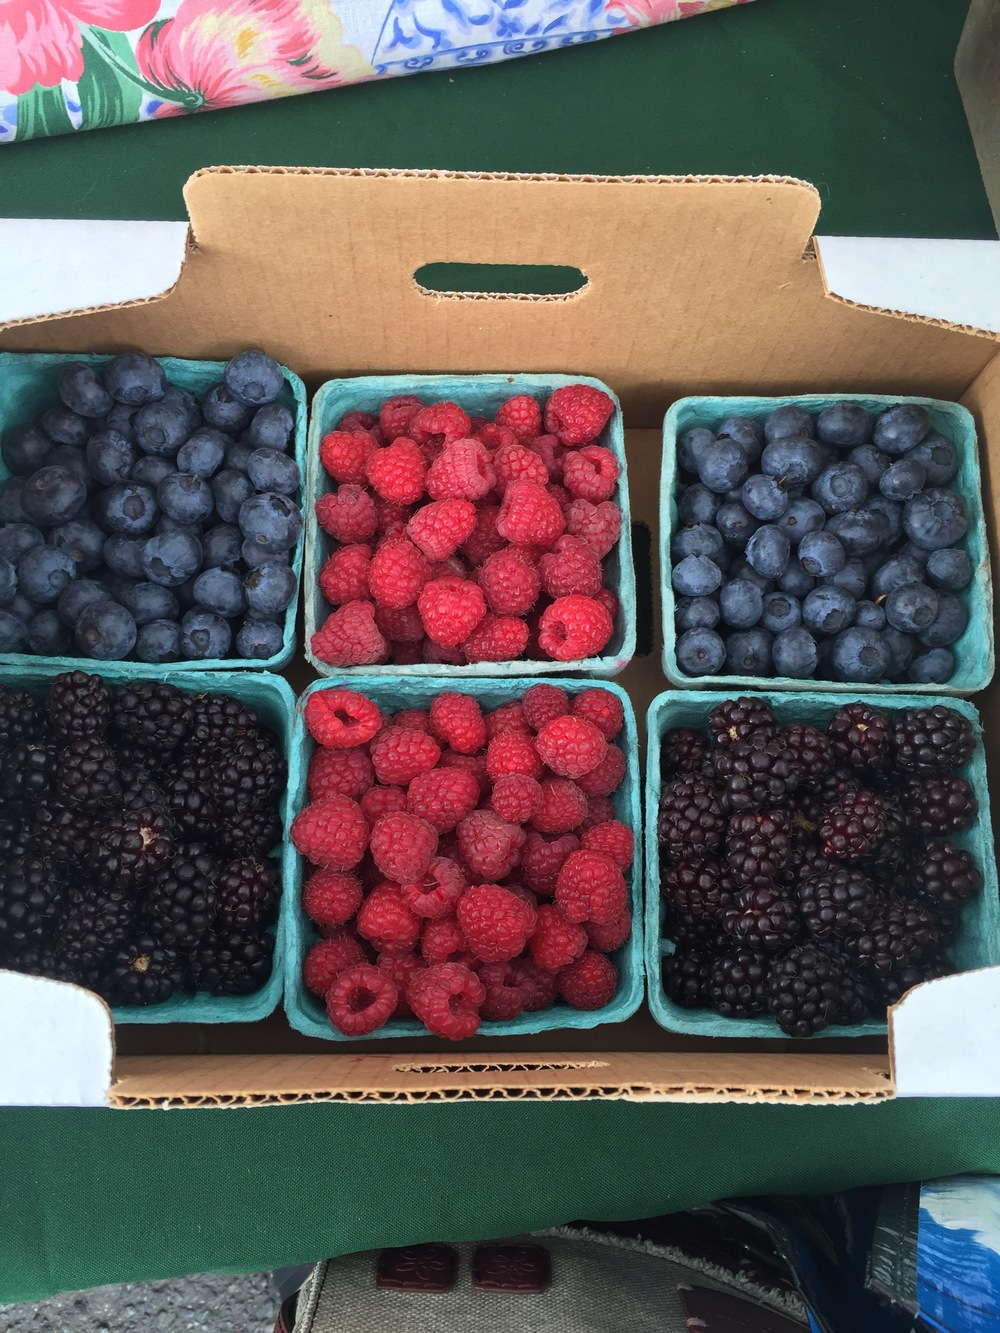 Boysenberries, blueberries, raspberries from  Port Townsend, Washington Farmers' Market .